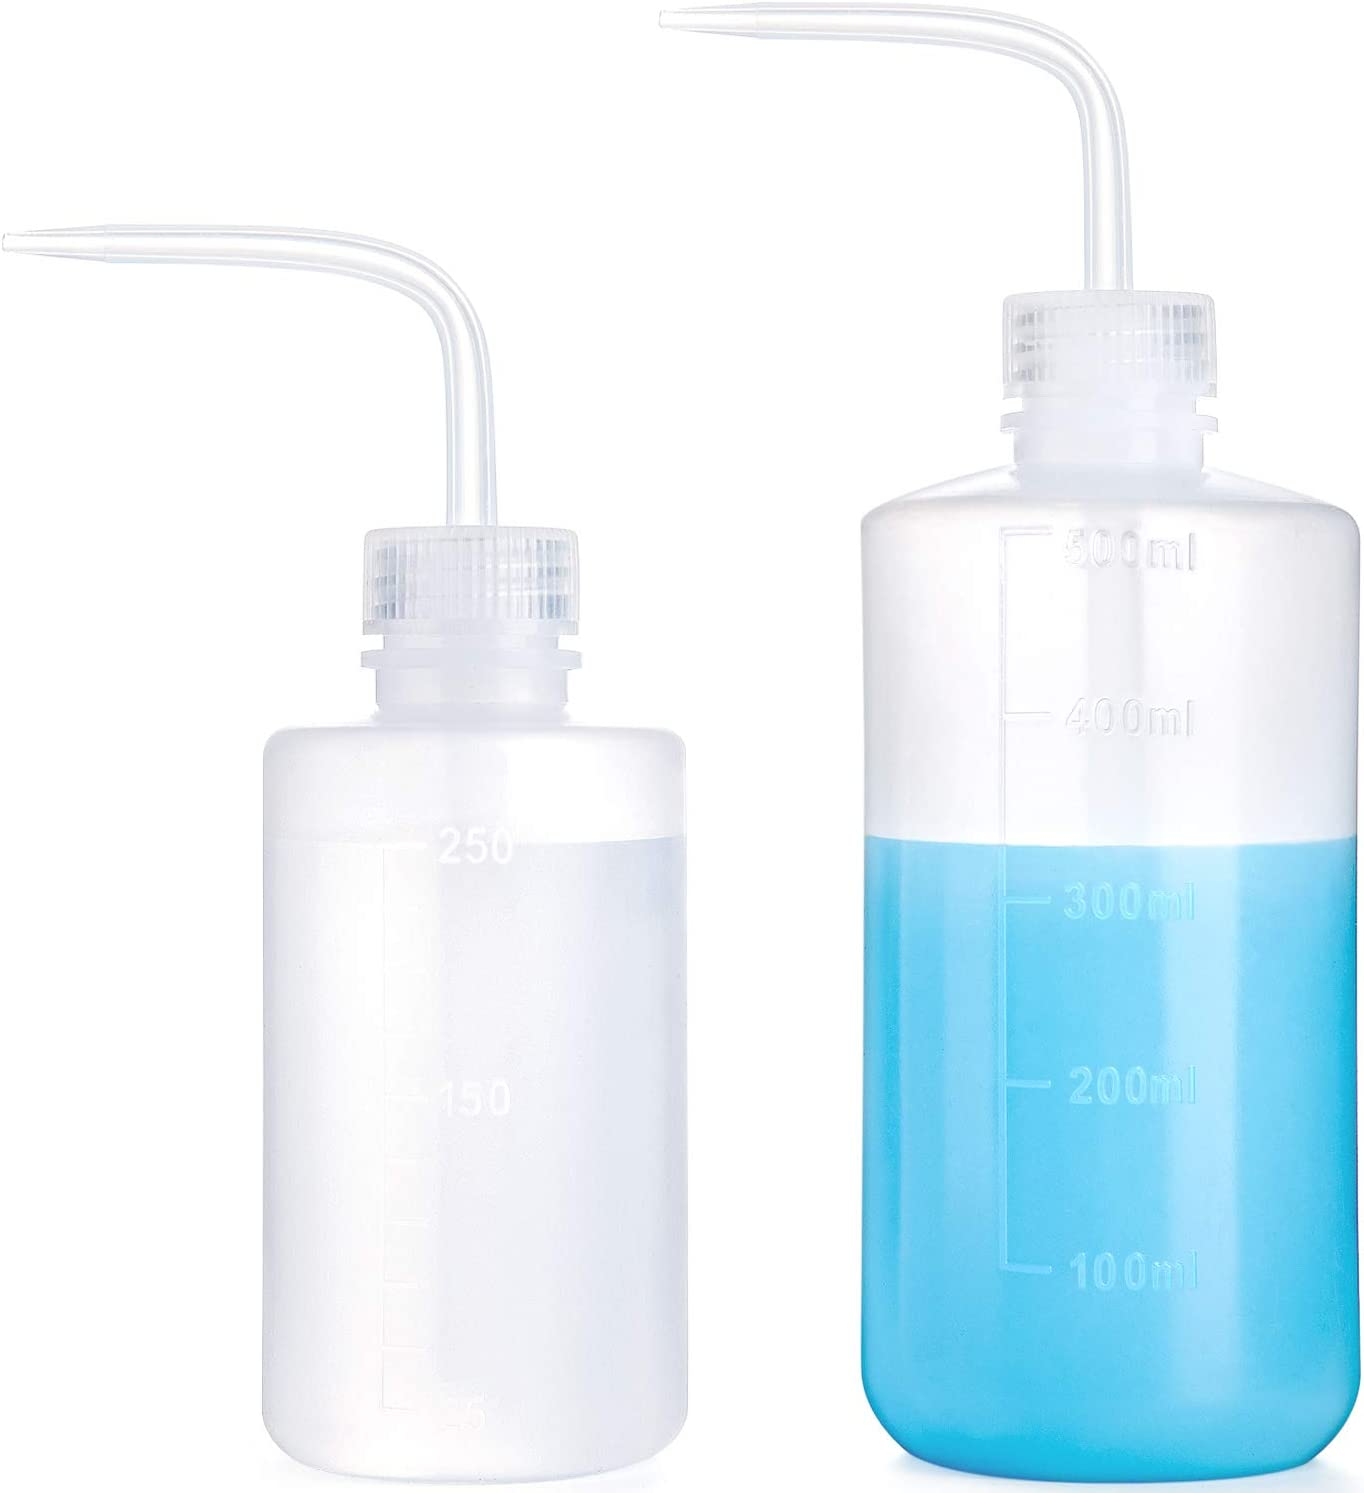 Mkono 2 Pack Plant Flower Succulent Watering Bottle Plastic Bend Mouth Watering Cans Safety Wash Bottle Squeeze Bottle 250ML and 500ML, Small and Medium : Garden & Outdoor